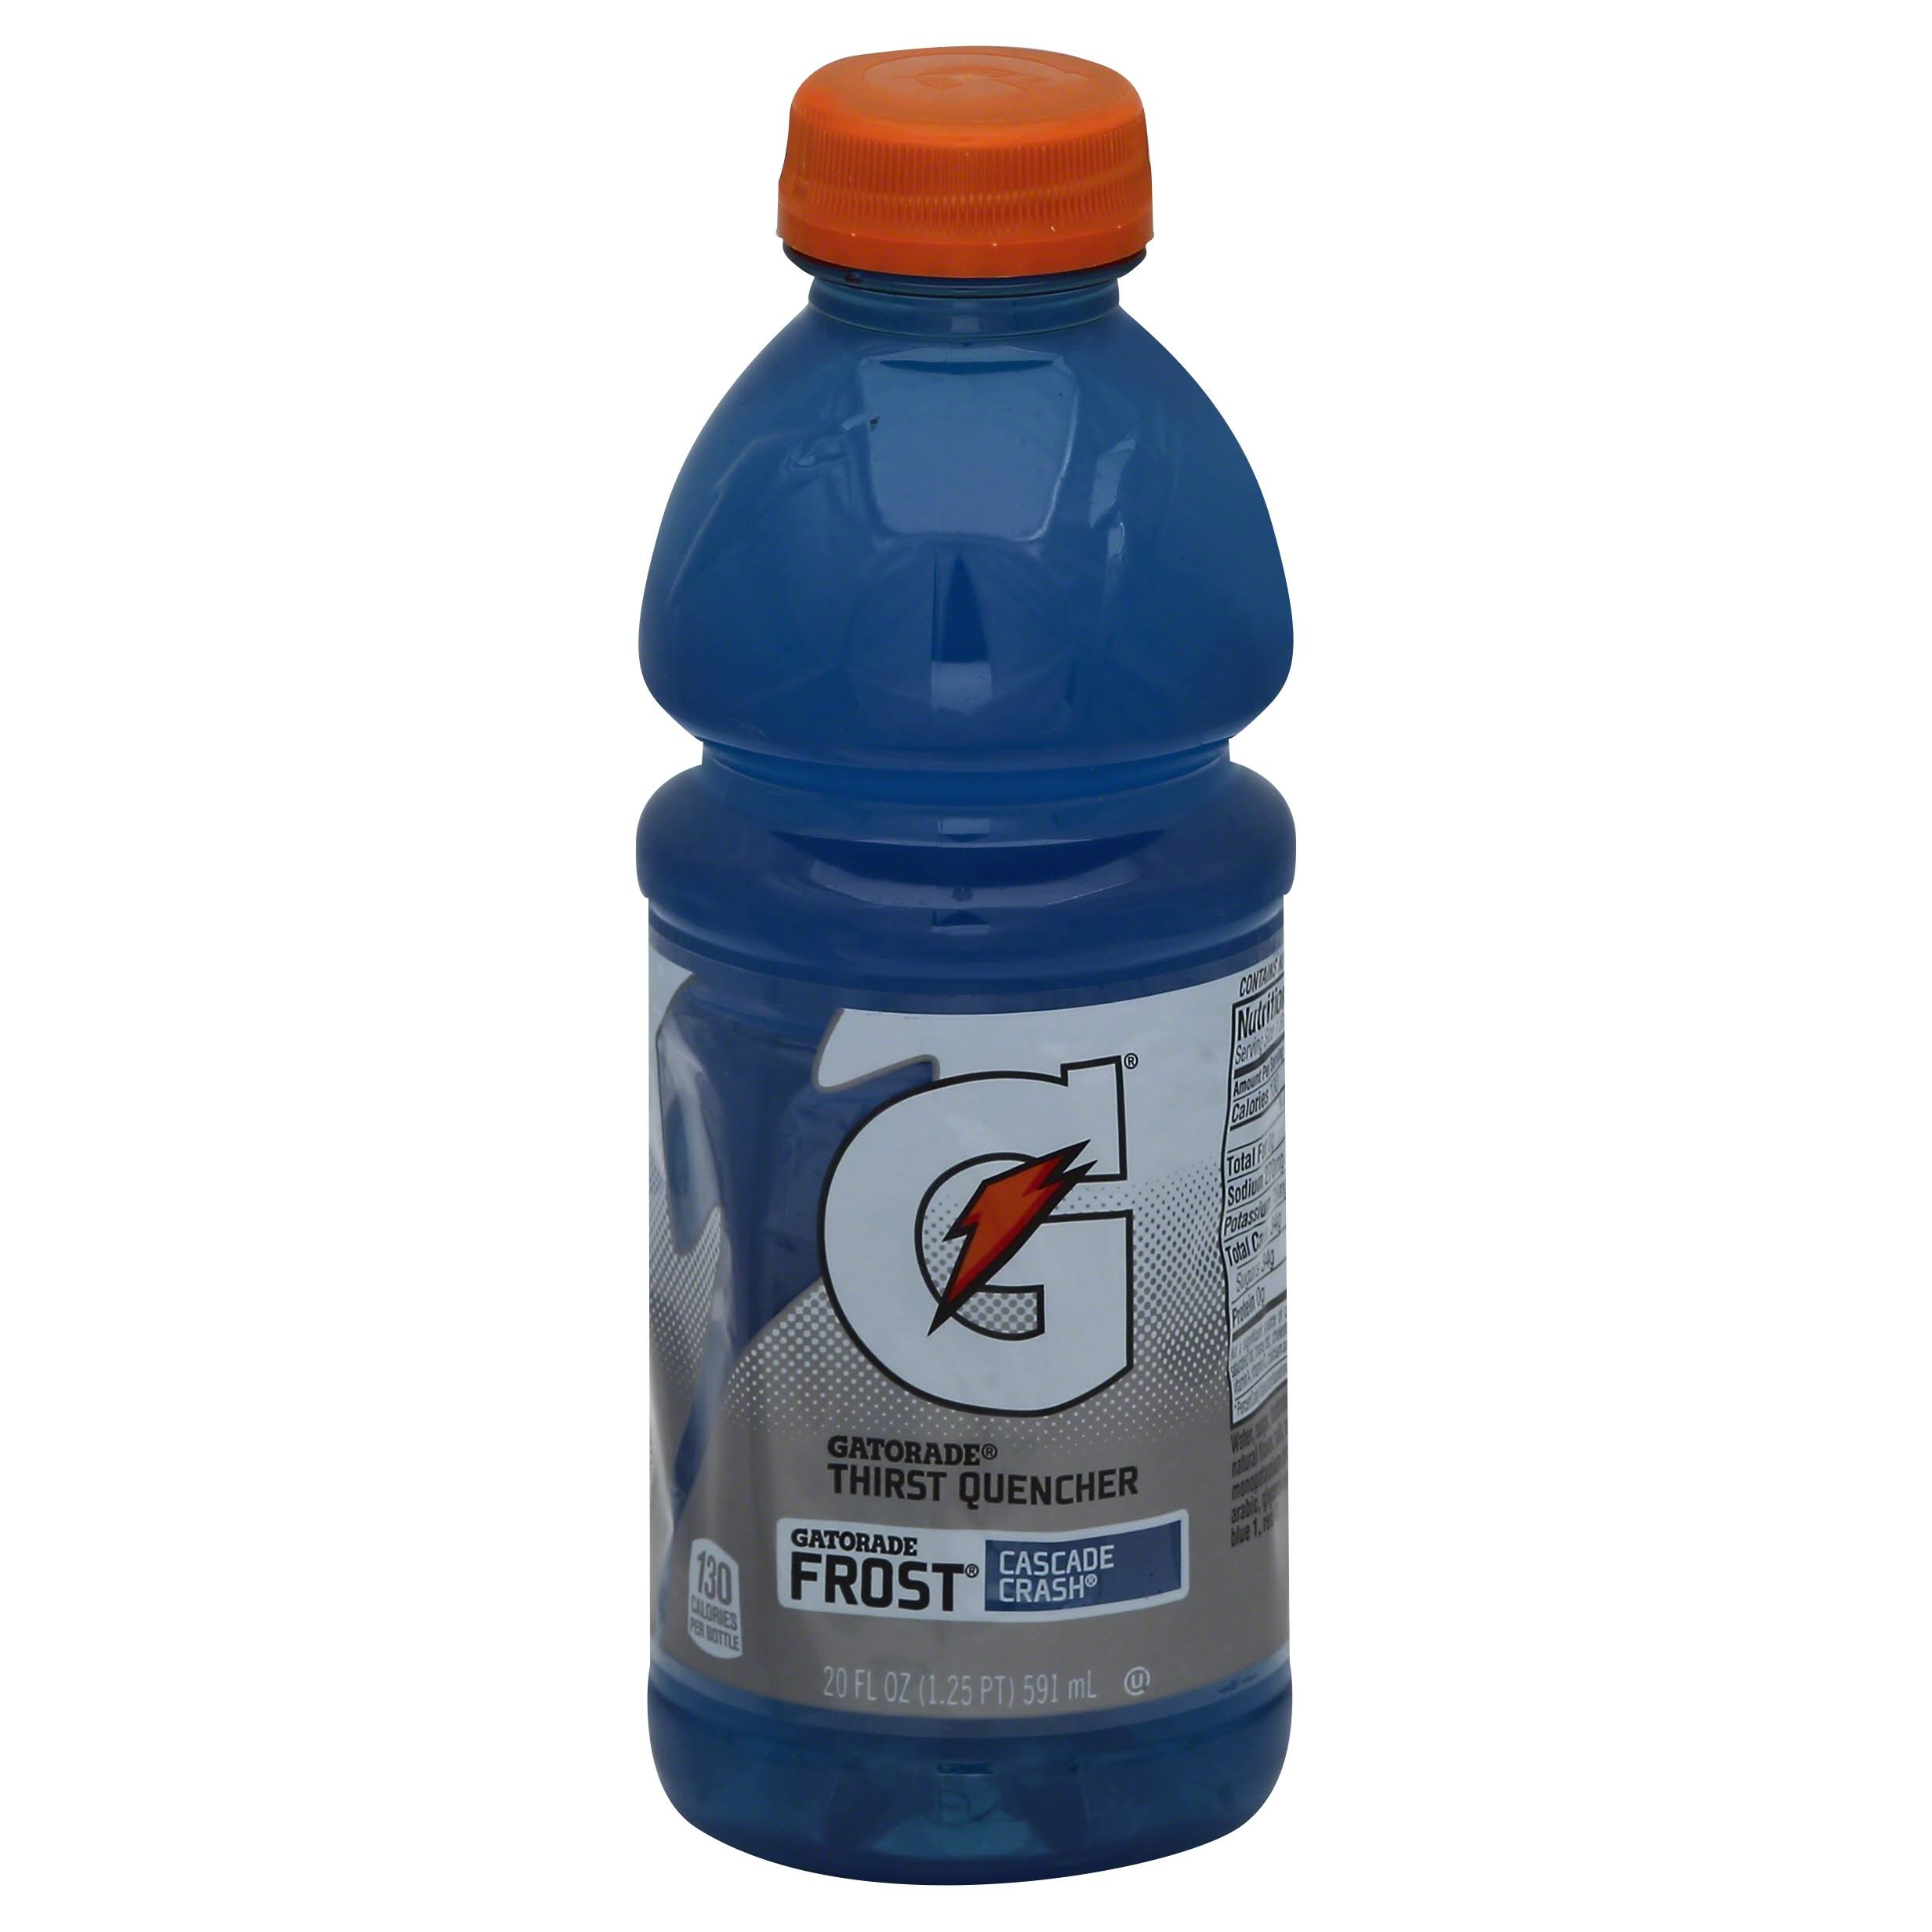 Gatorade G Series Thirst Quencher, Perform, Frost, Cascade Crash - 20 fl oz